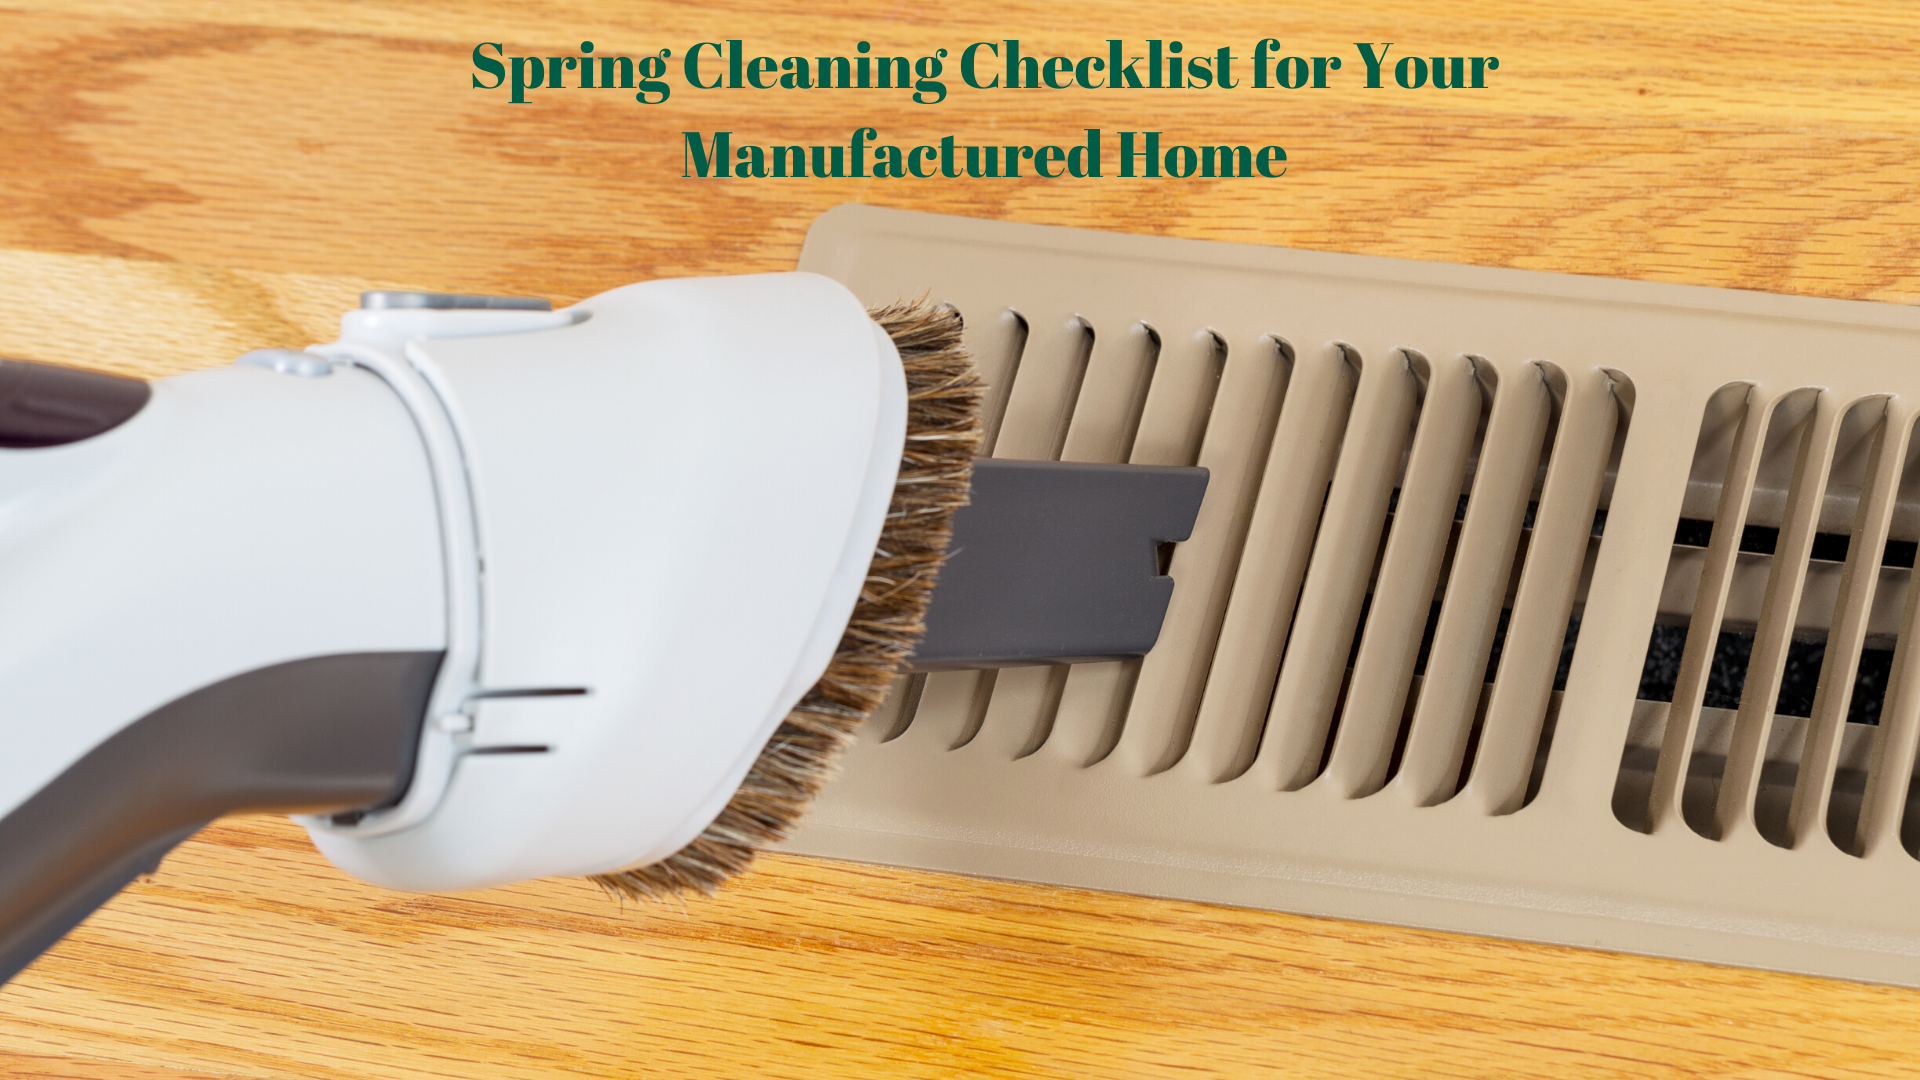 Spring Cleaning Checklist for Your Manufactured Home